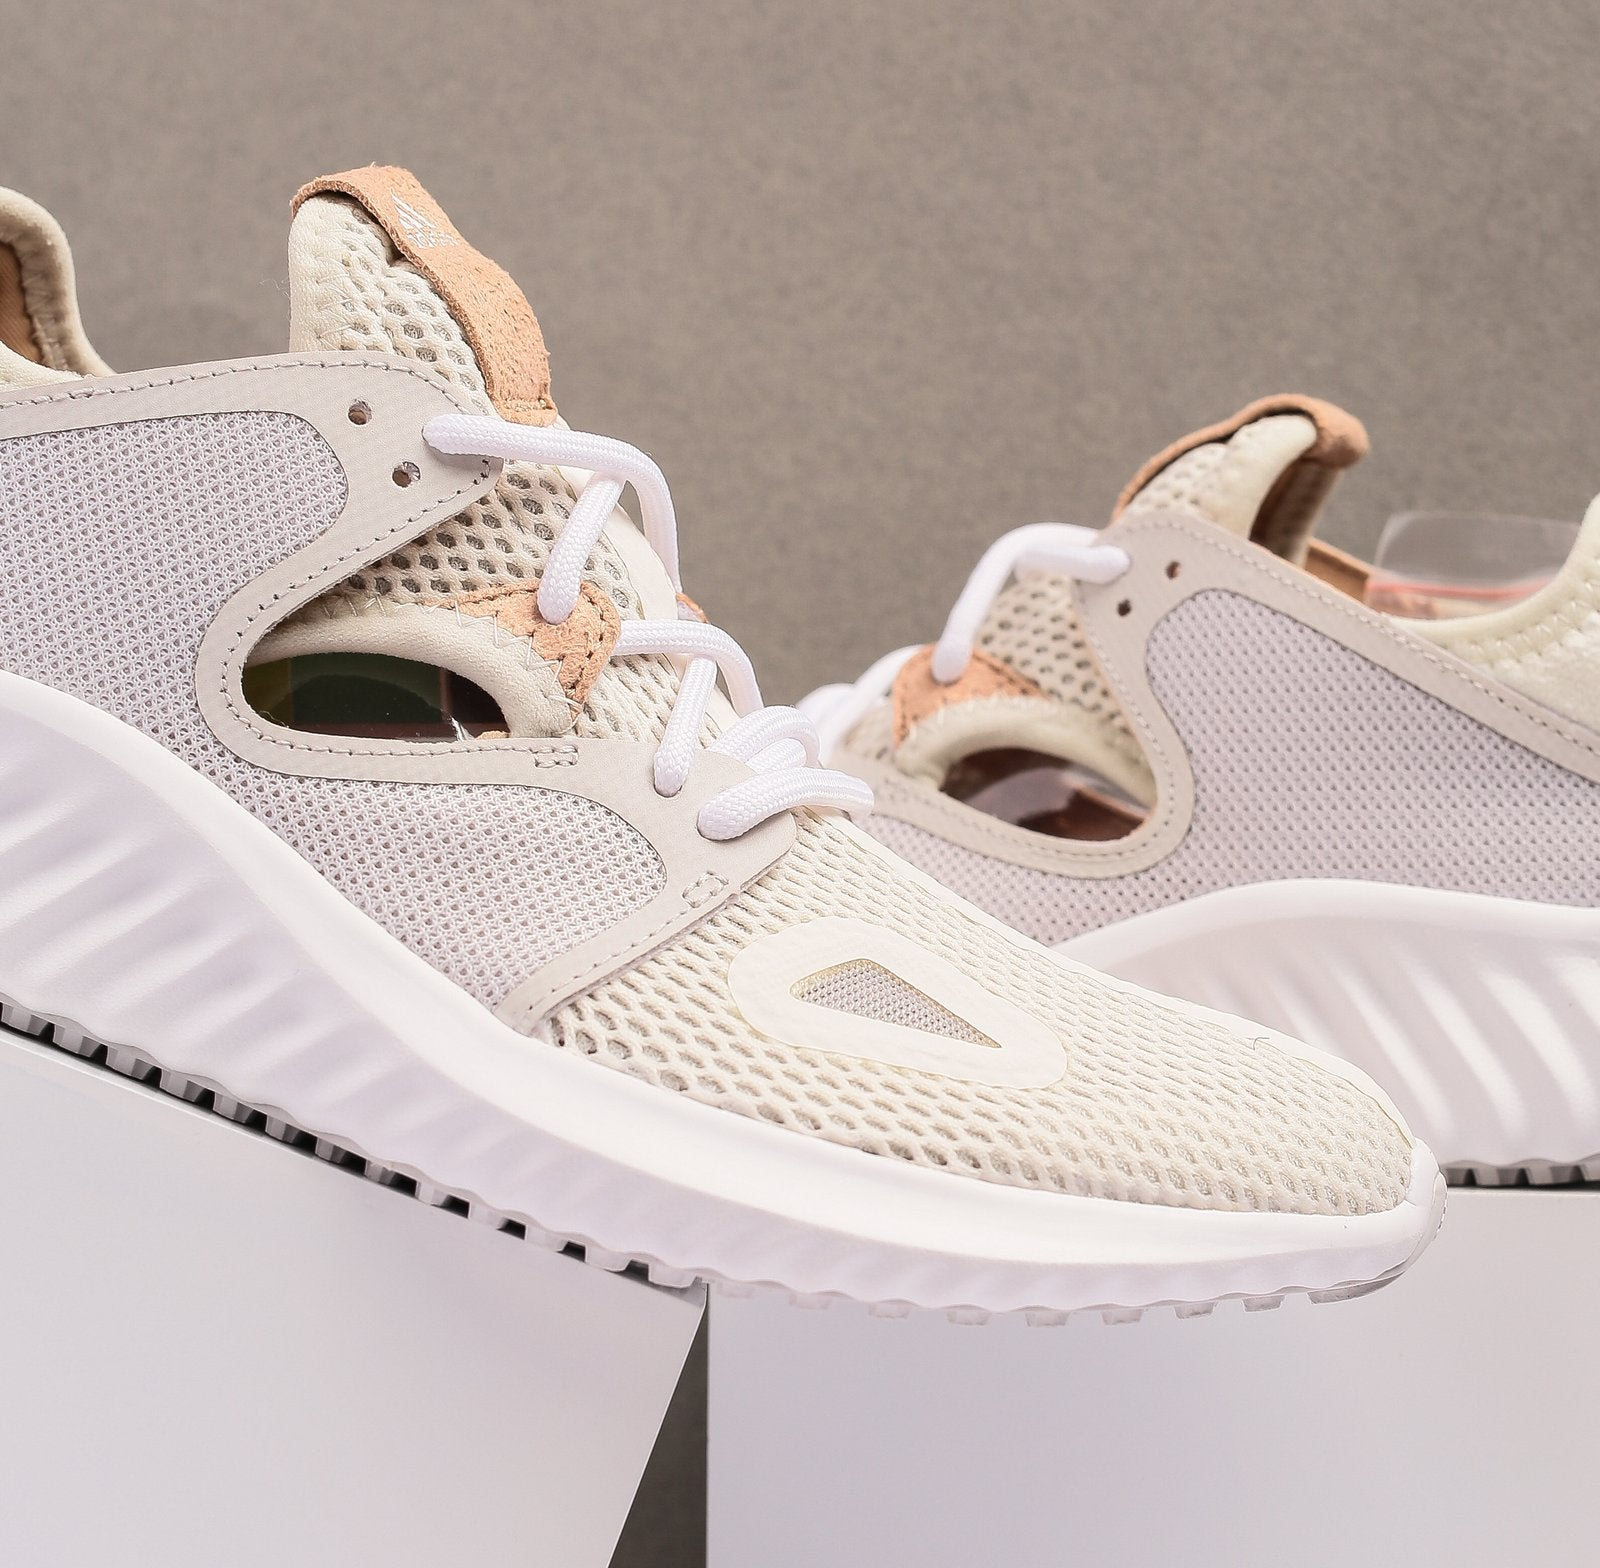 ADIDAS RUN LUX CLIMA WOMENS - Oneness Boutique 063a014a3